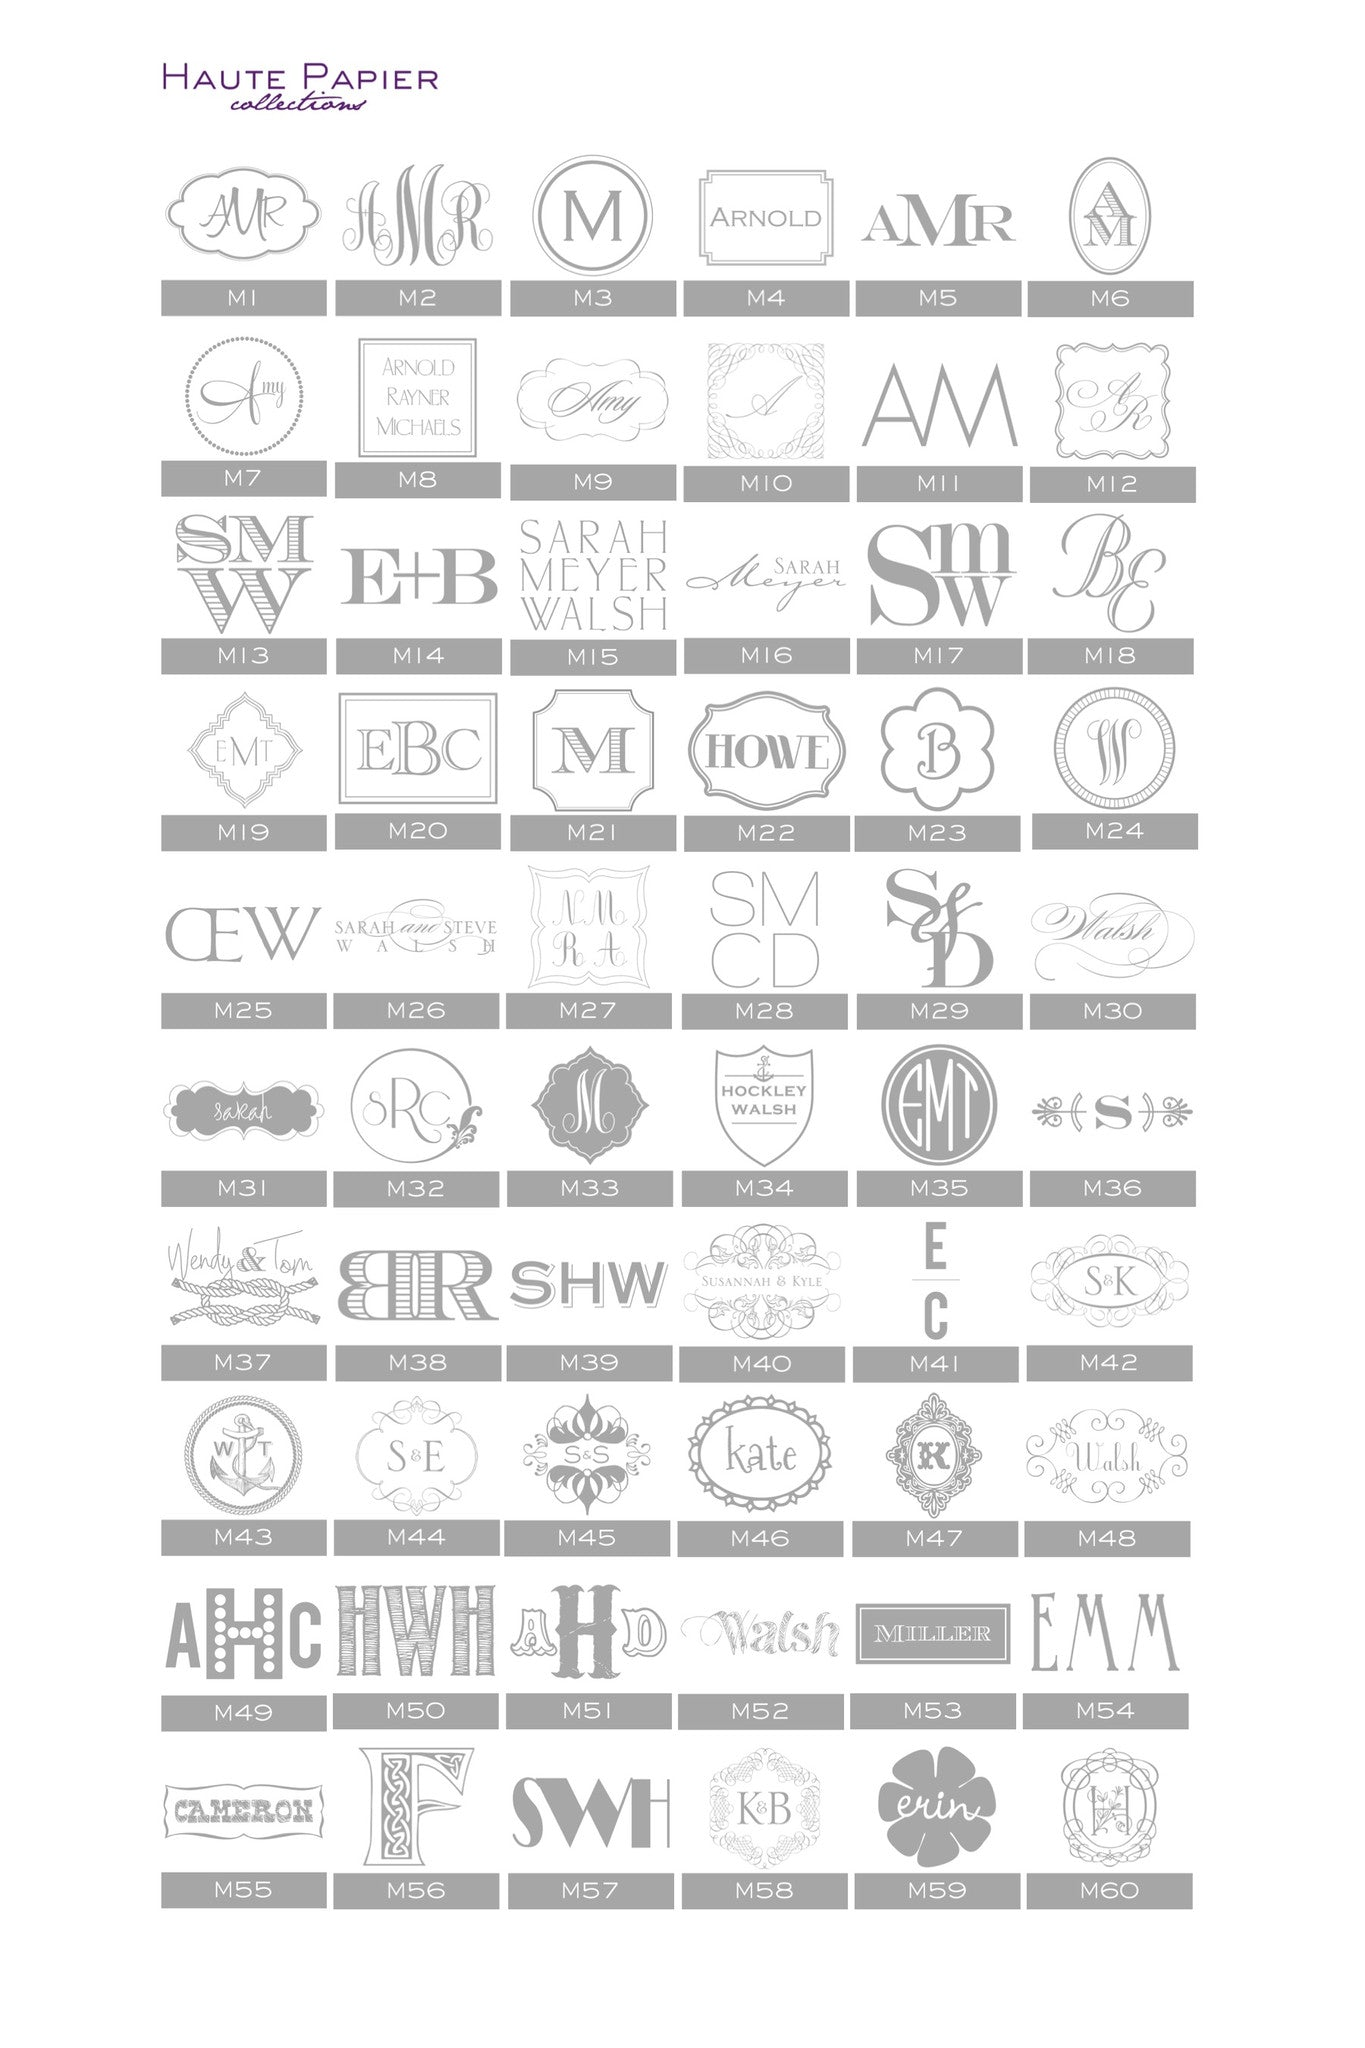 Haute Papier Monogram Options